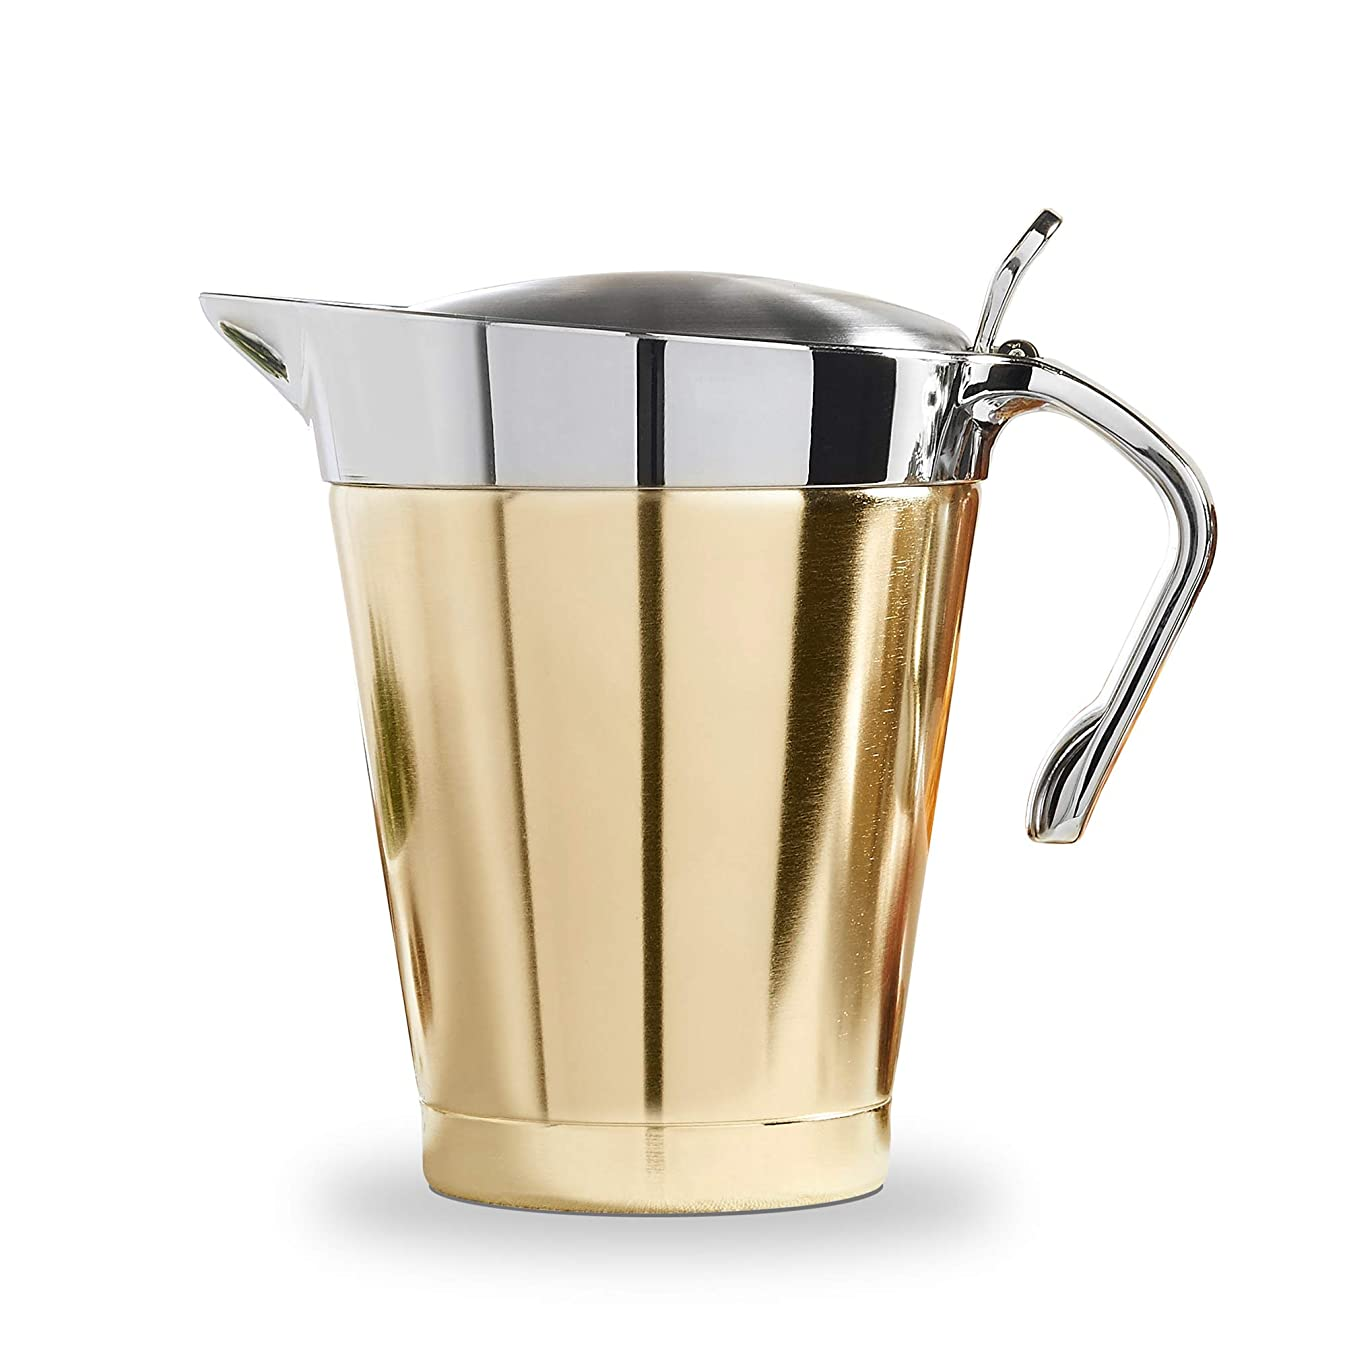 VonShef Brushed Gold Gravy Boat, Double Insulated Jug with Hinged Lid Ideal Thanksgiving Pourer for Gravy or Cream, Stainless Steel, 32oz